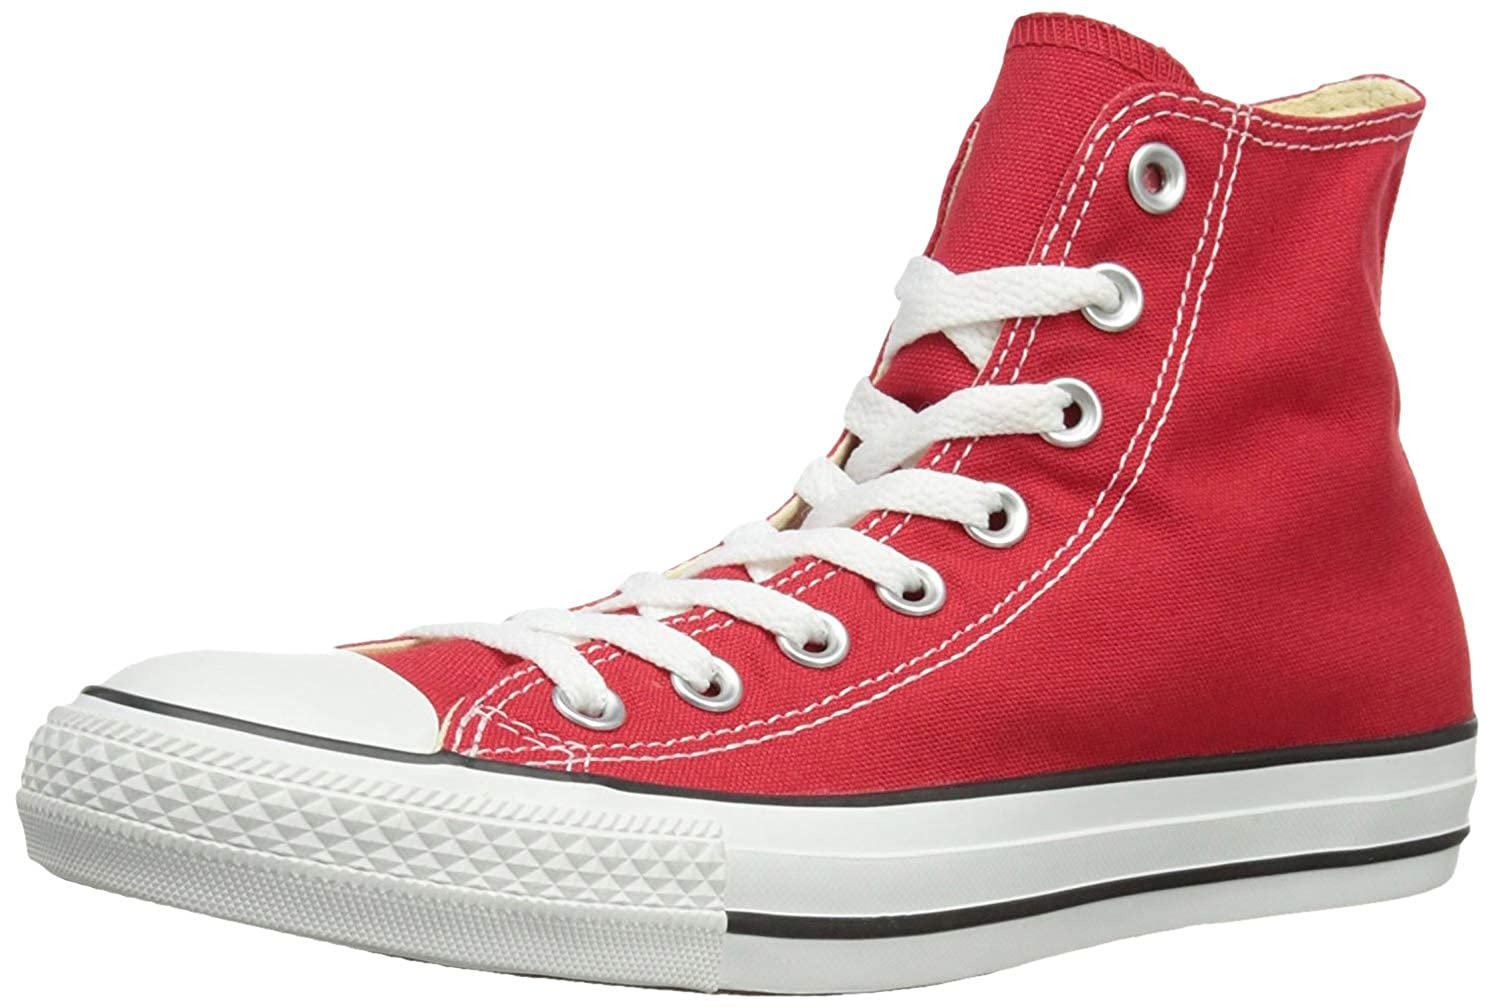 TALLA 42 EU. Converse All Star Hi - Zapatilla Alta Unisex Adulto